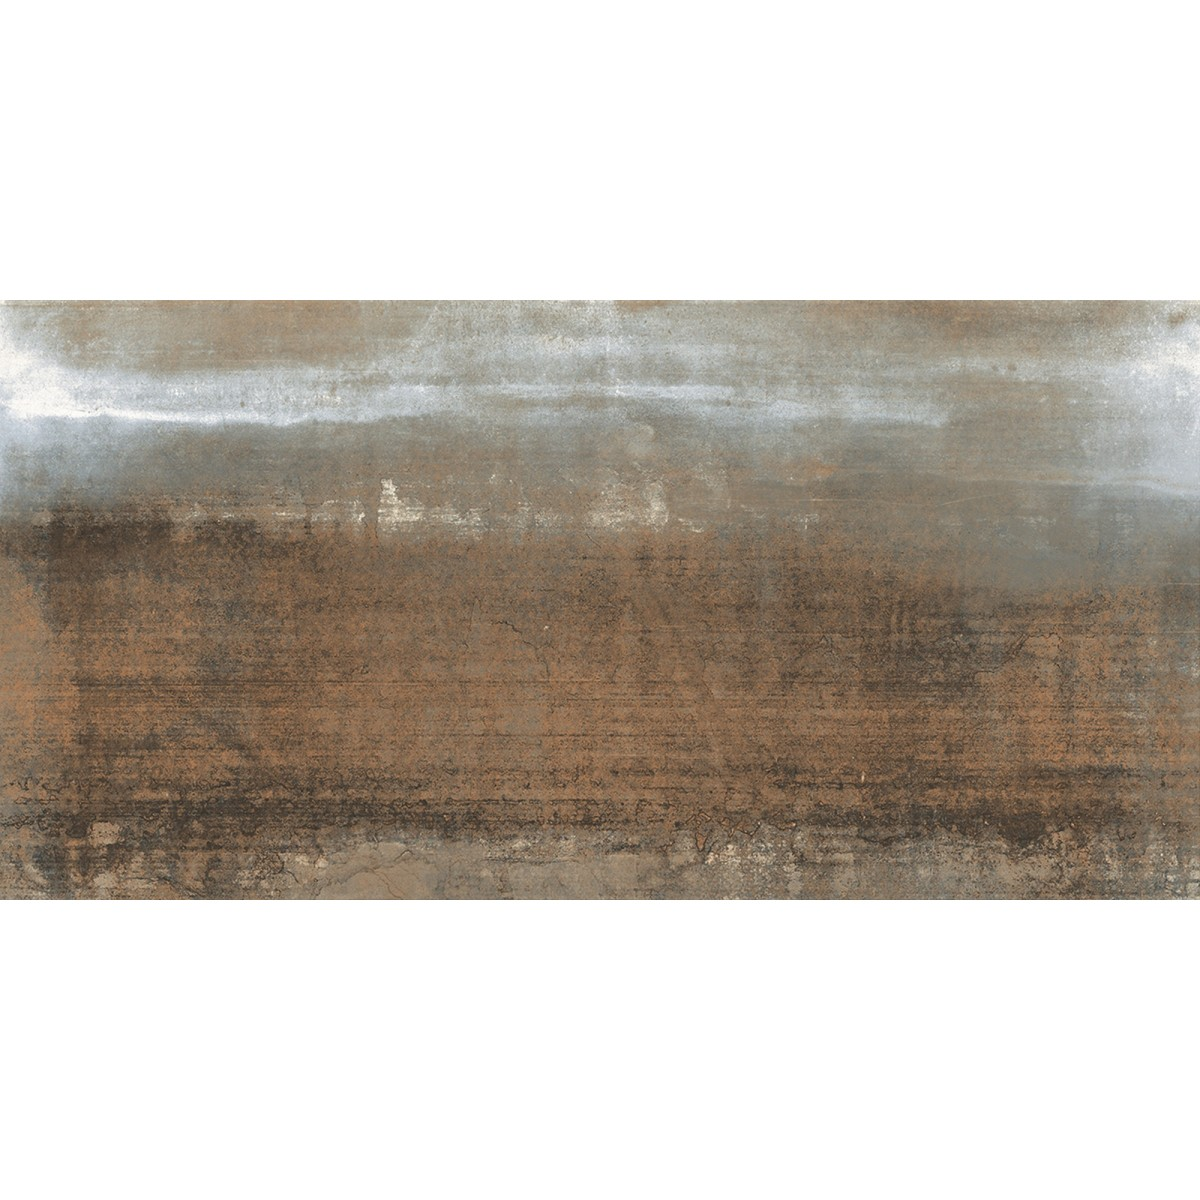 Rock Grey, Lappato, 1200x600x11 mm